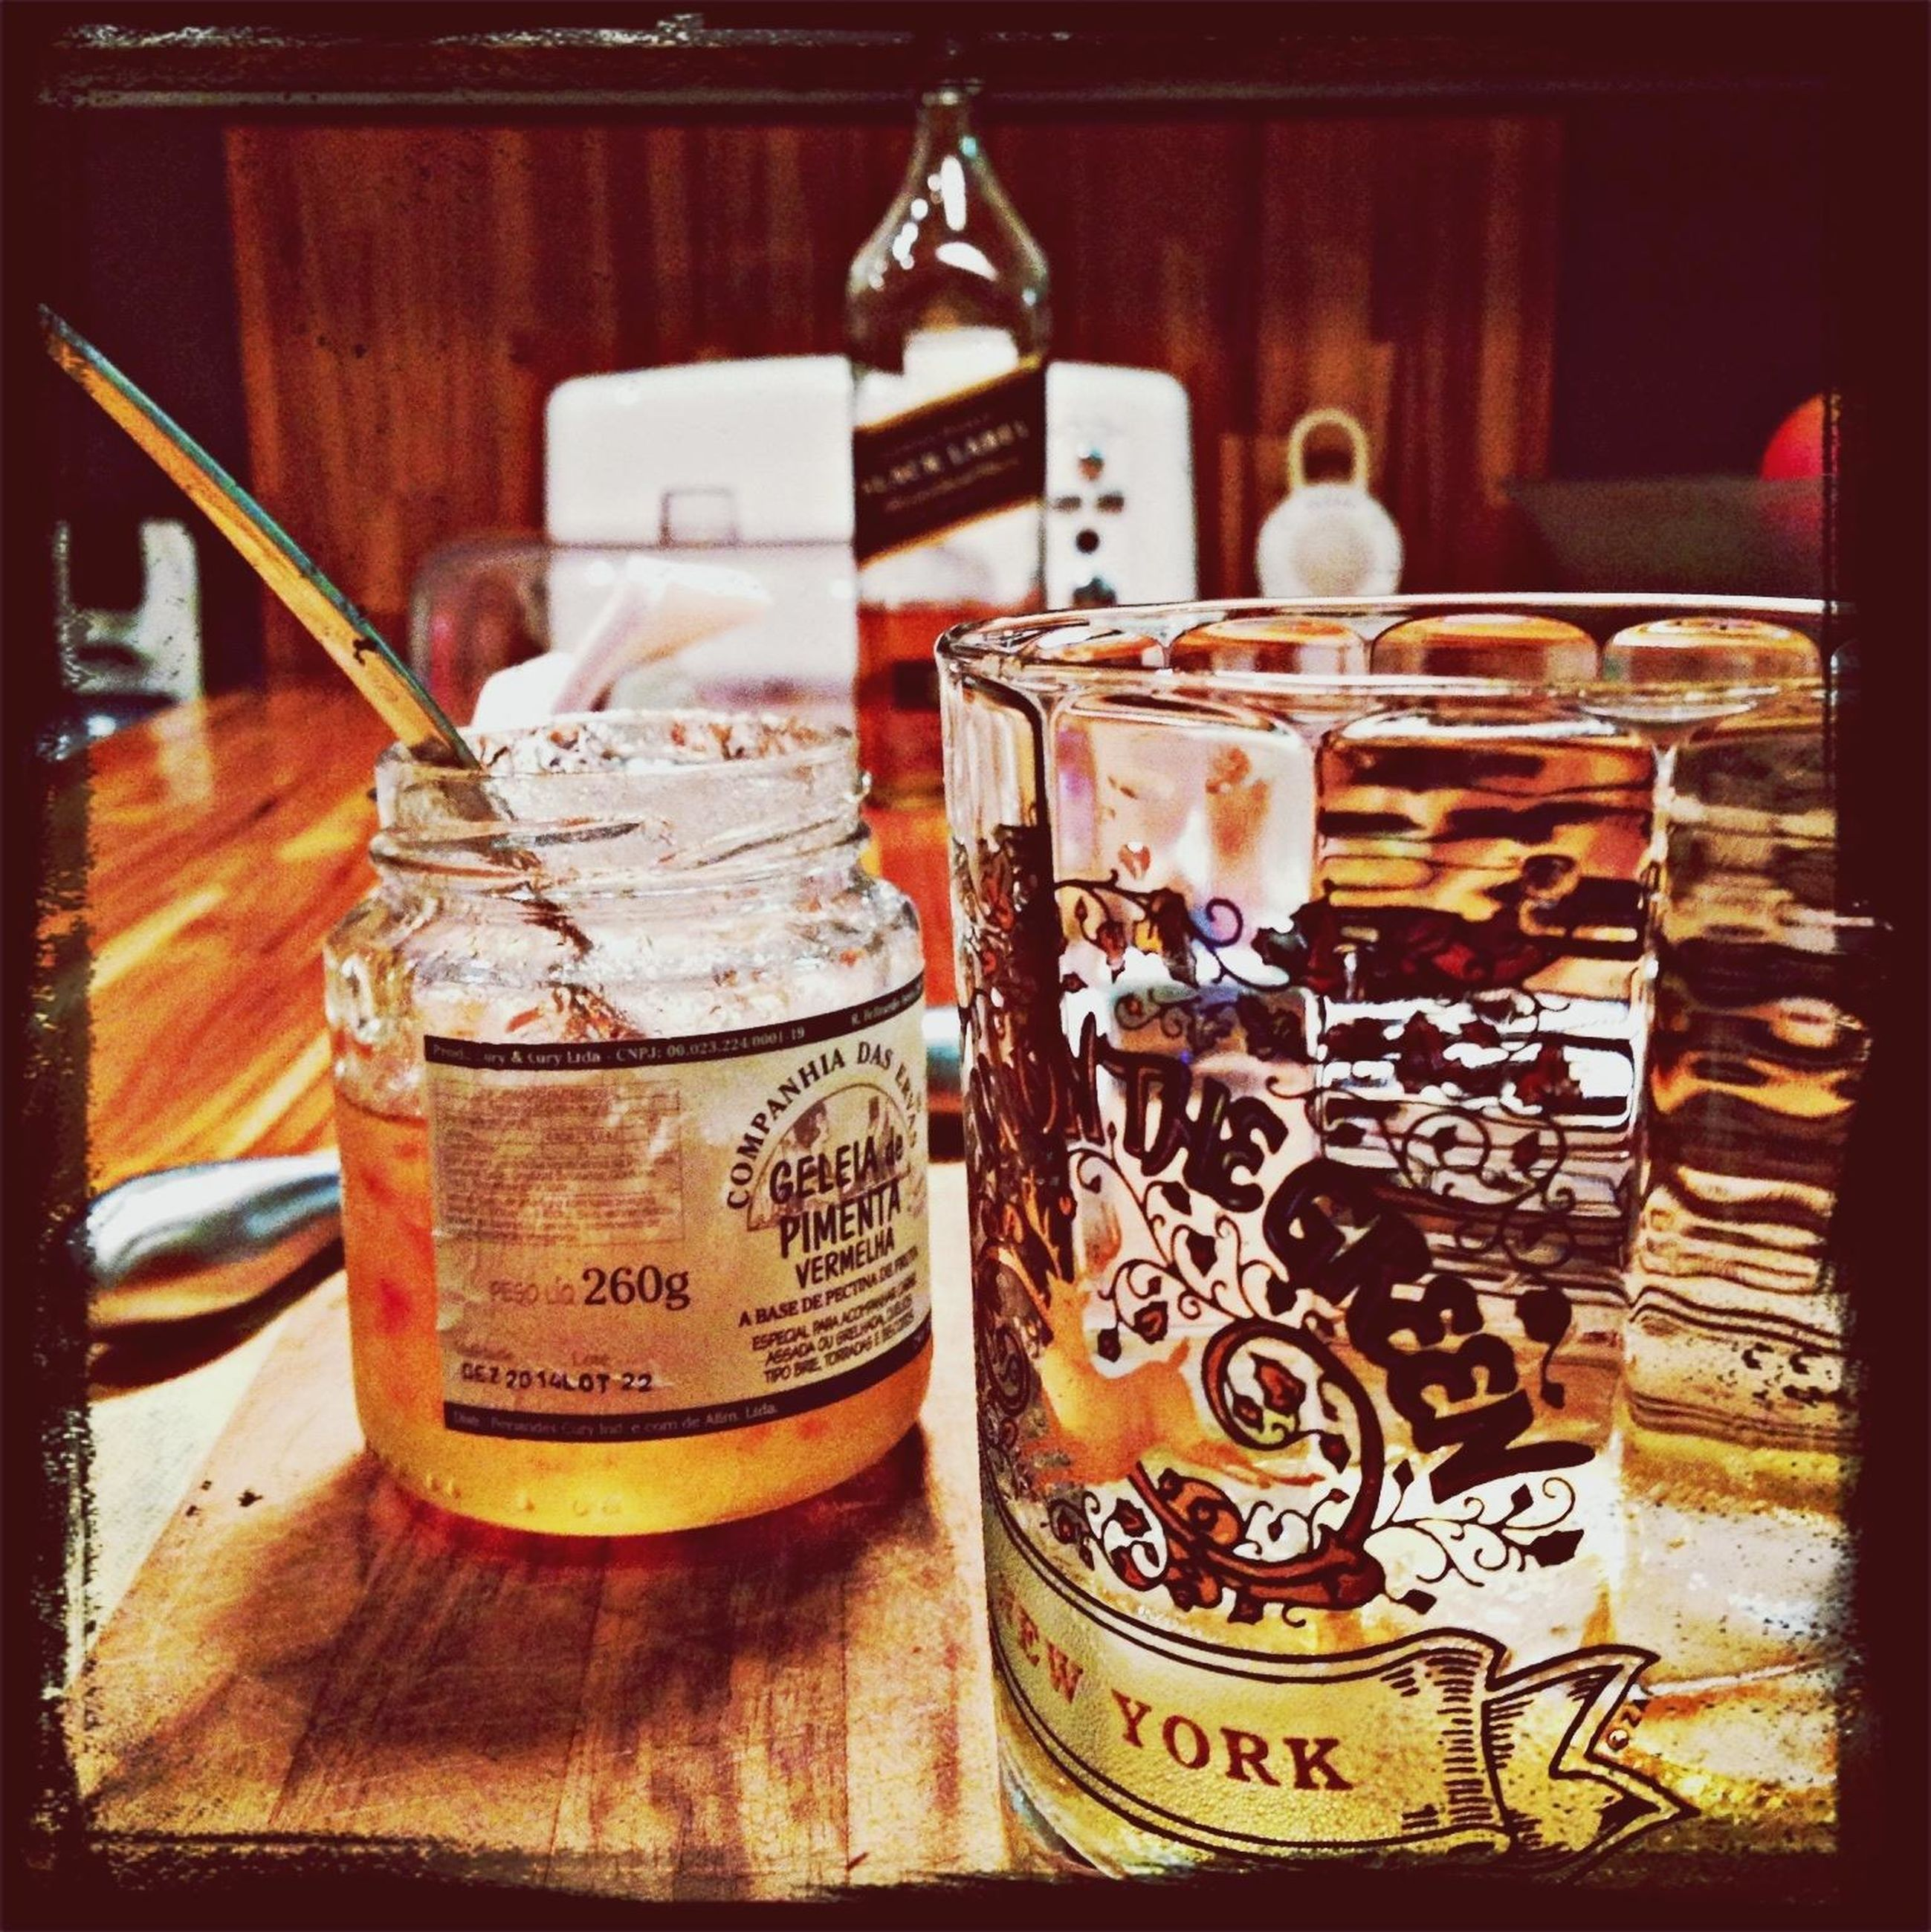 indoors, table, still life, food and drink, text, drink, wood - material, no people, western script, close-up, jar, communication, auto post production filter, focus on foreground, container, freshness, day, shelf, restaurant, absence